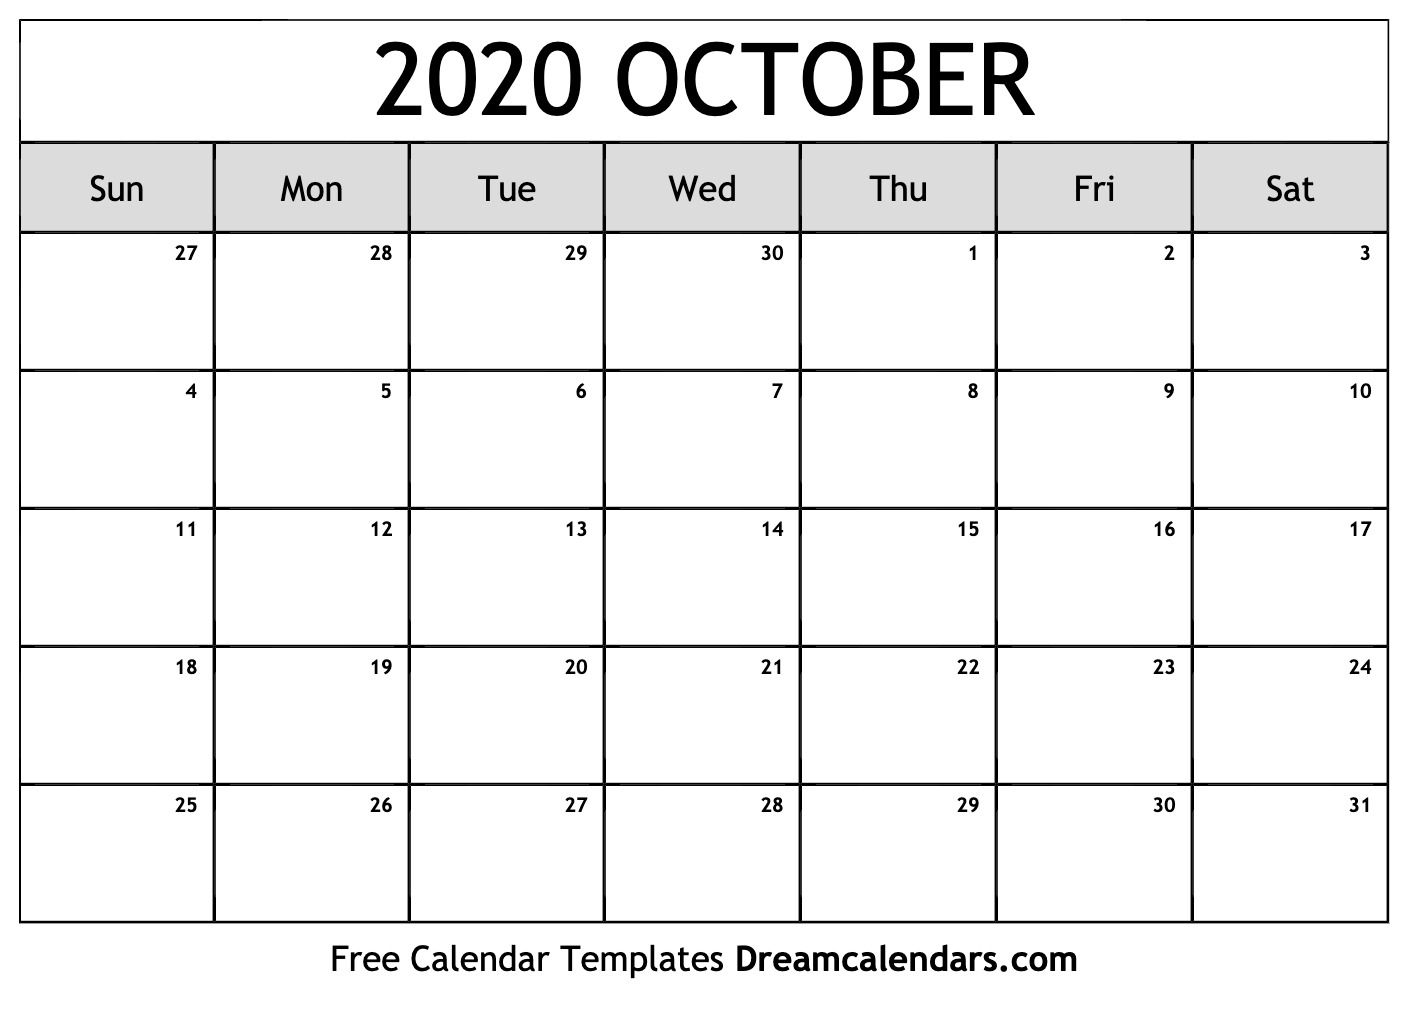 October 2020 Calendar Wallpapers   Top October 2020 Calendar 1406x1020